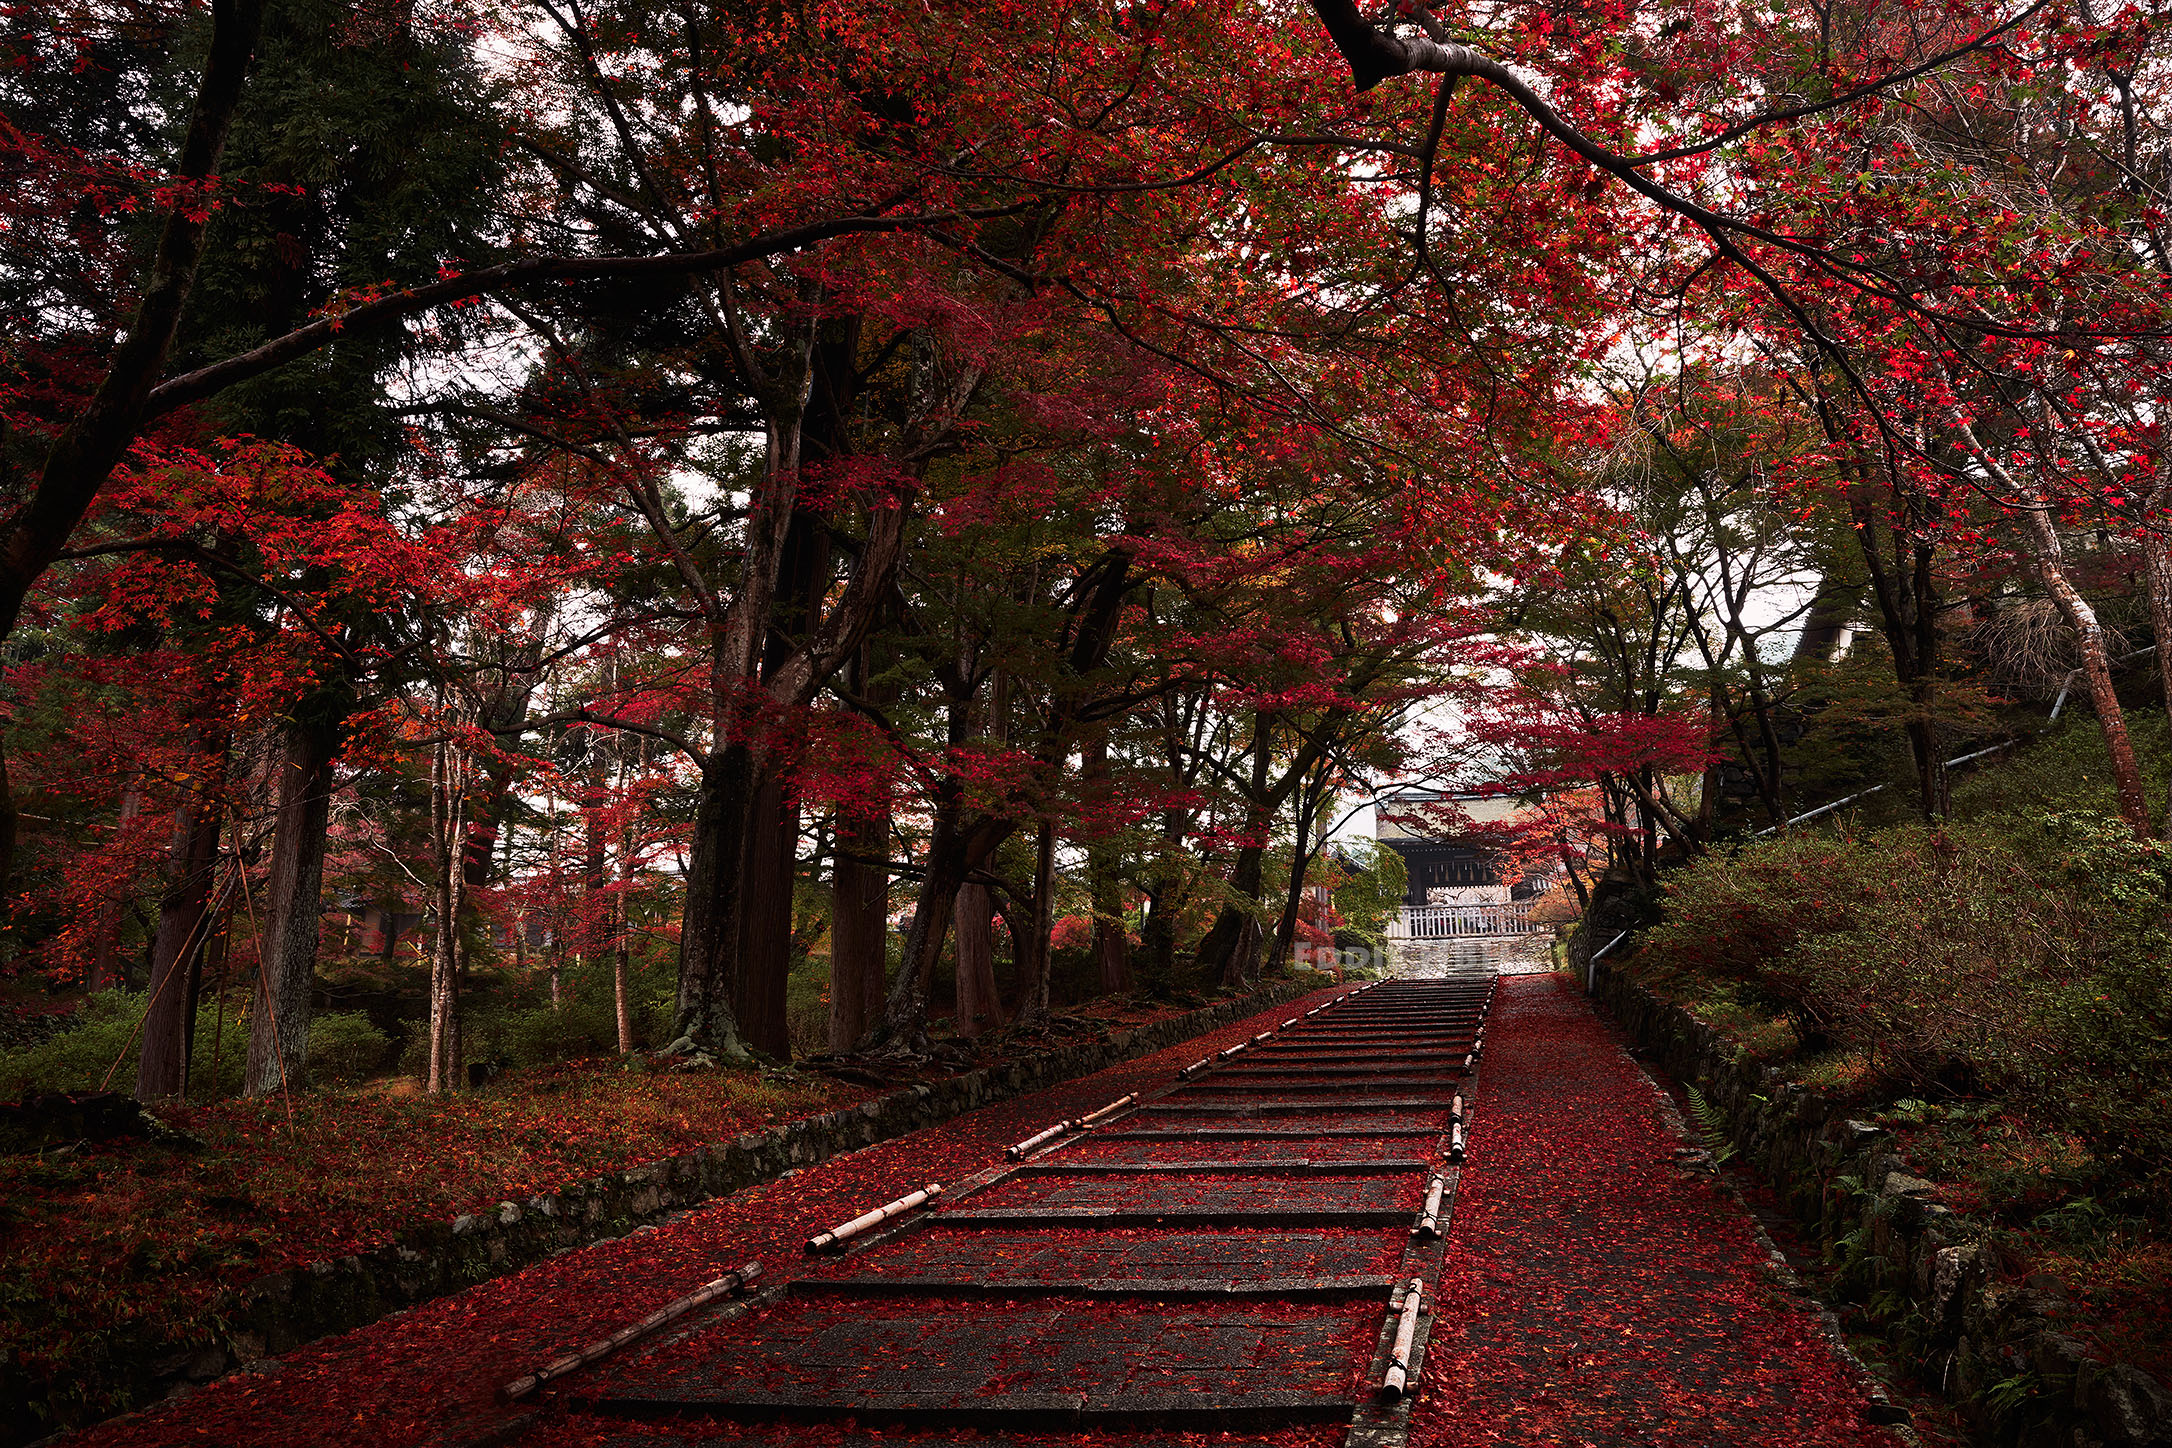 Red maple leaves cover the stairs to the Bishamondou temple